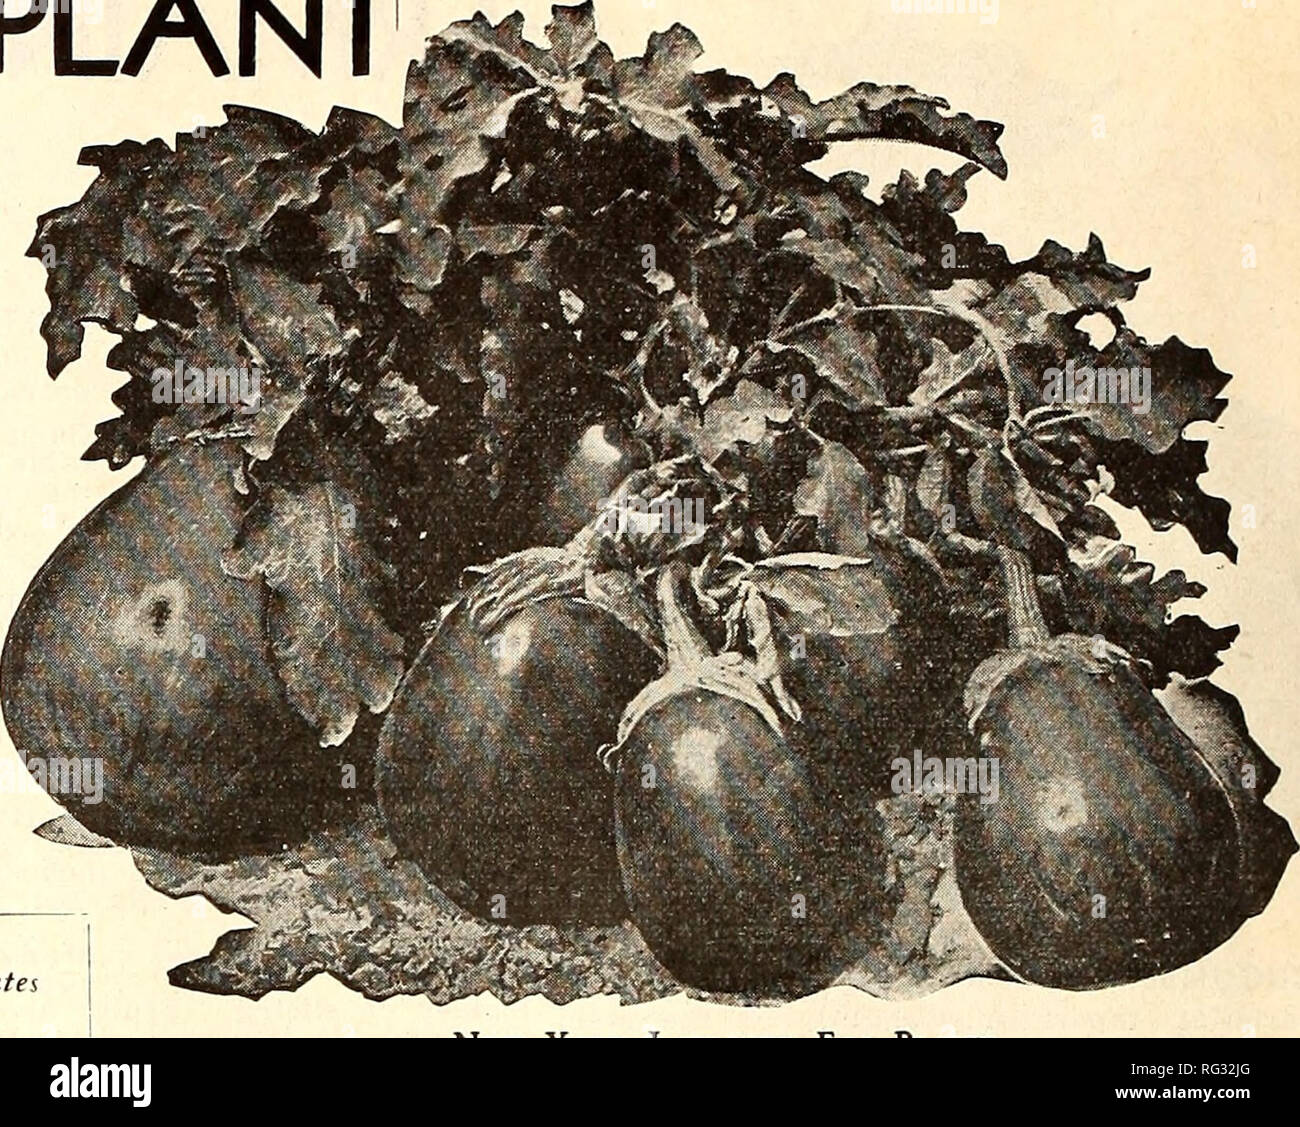 """. California gardening. Nurseries (Horticulture) Catalogs; Flowers Seeds Catalogs; Plants, Ornamental Catalogs; Vegetables Seeds Catalogs; Fruit trees Catalogs; Grasses Seeds Catalogs. GERMAIN'S EGG PLANT Ambergine, Fr. Bercnjena, Sp. Petonciamo, Ital. Eierfrucht, Ger. Note—Prices listed are postpaid. (""""Mil TURF The plants should be started under glass if ^ wanted early. If later results are desired, seed should be planted in cold frames or in boxes where special care can be given. Egg plant seed is very delicate and will not grow unless special care is given it. It is easily affected by  Stock Photo"""